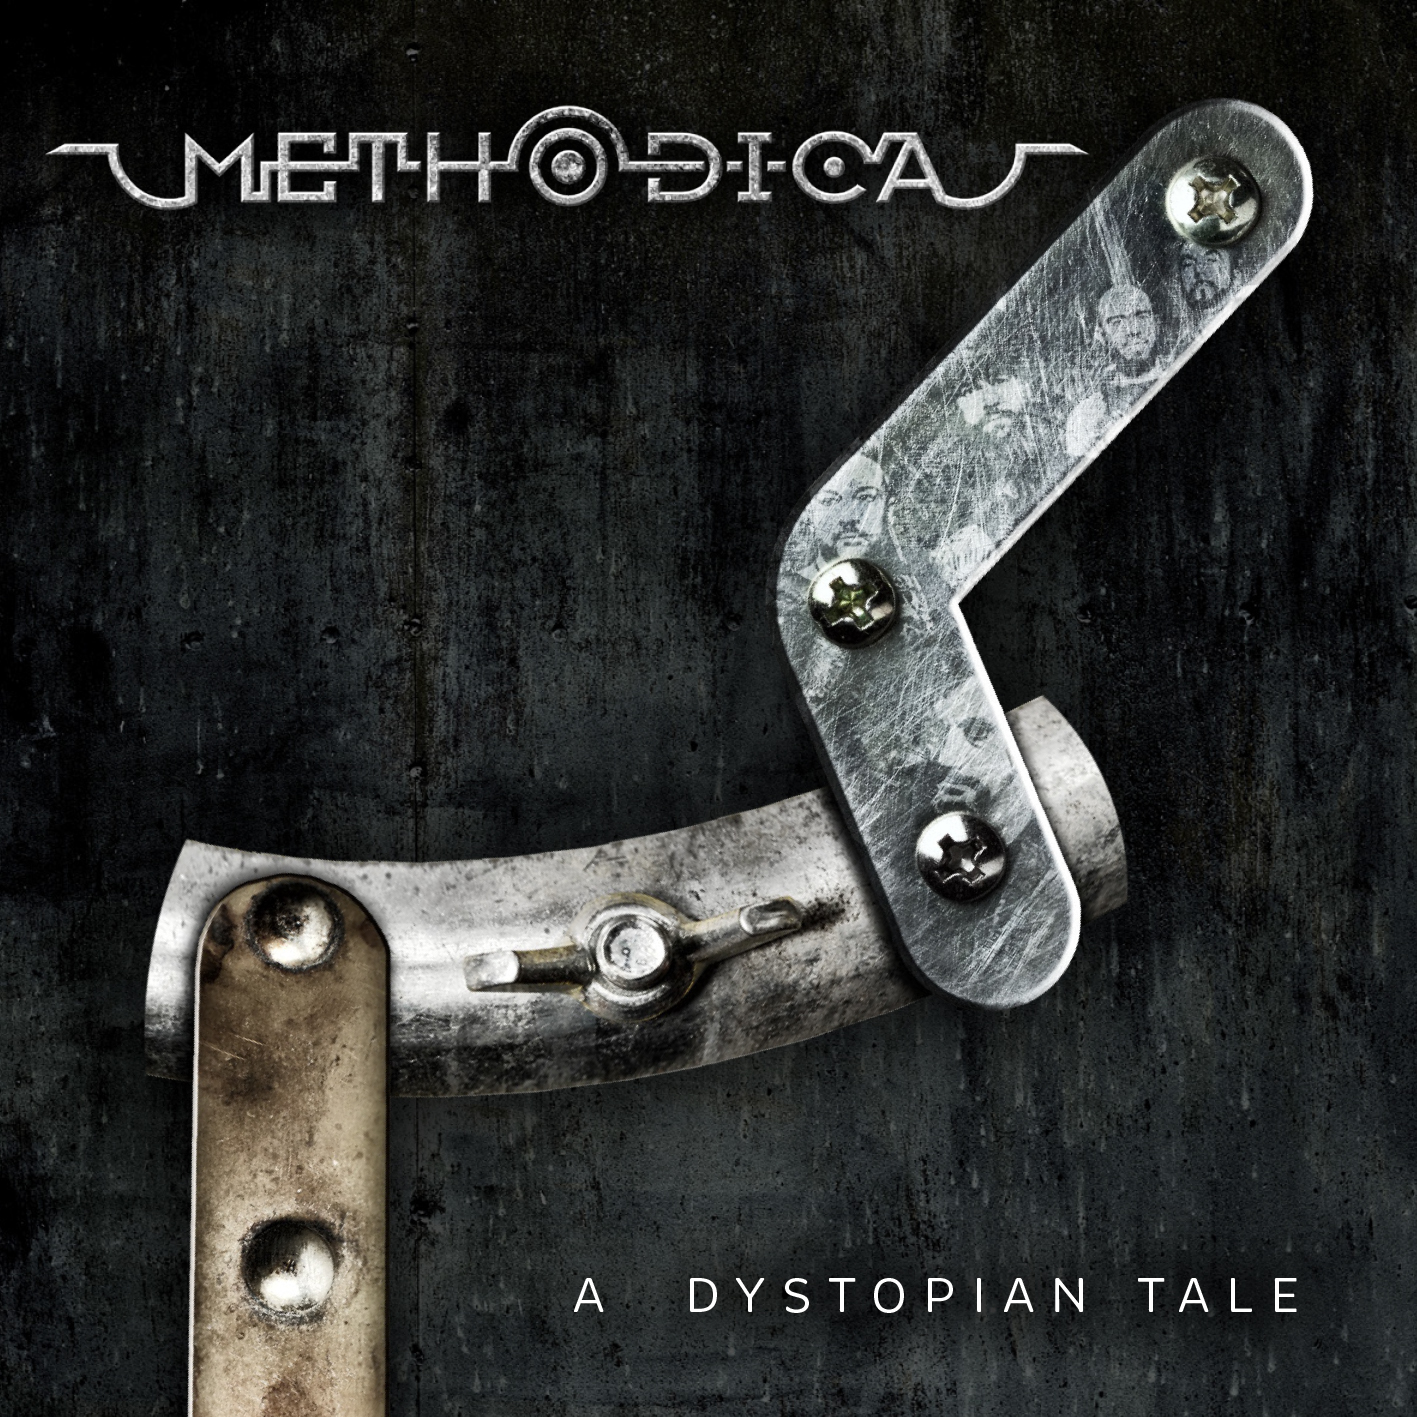 Methodica premieres 'A Dystopian Tale' video feat. Todd La Torre